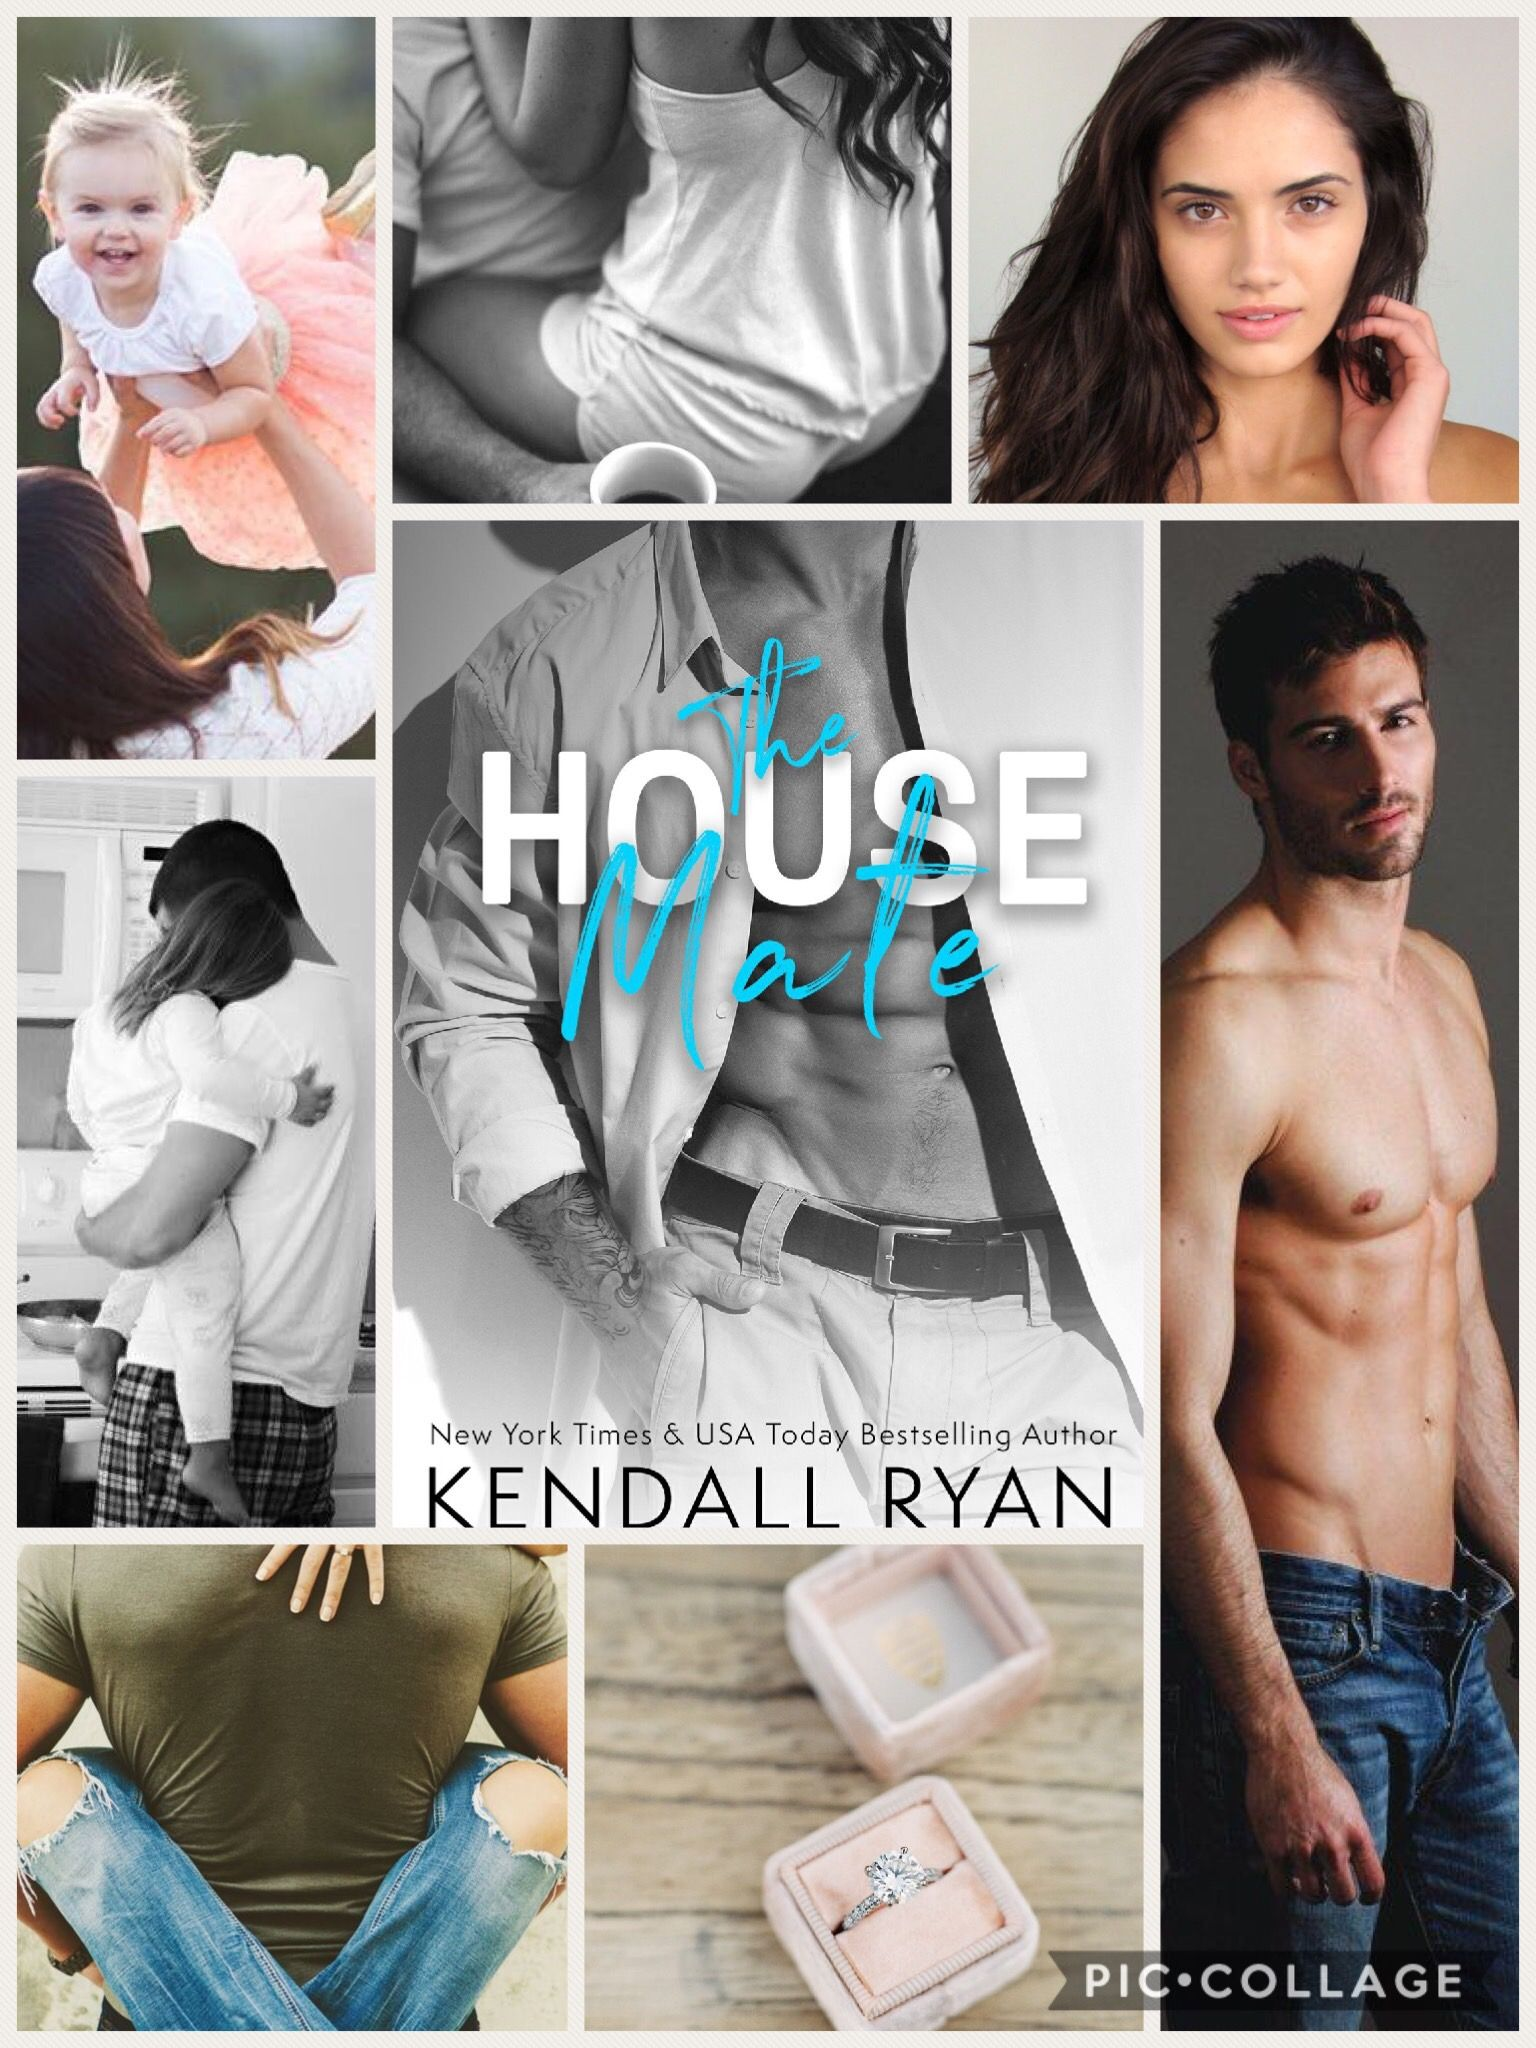 Kendall Ryan Libros The House Mate By Kendall Ryan Book Bf In 2019 Libros Lectura